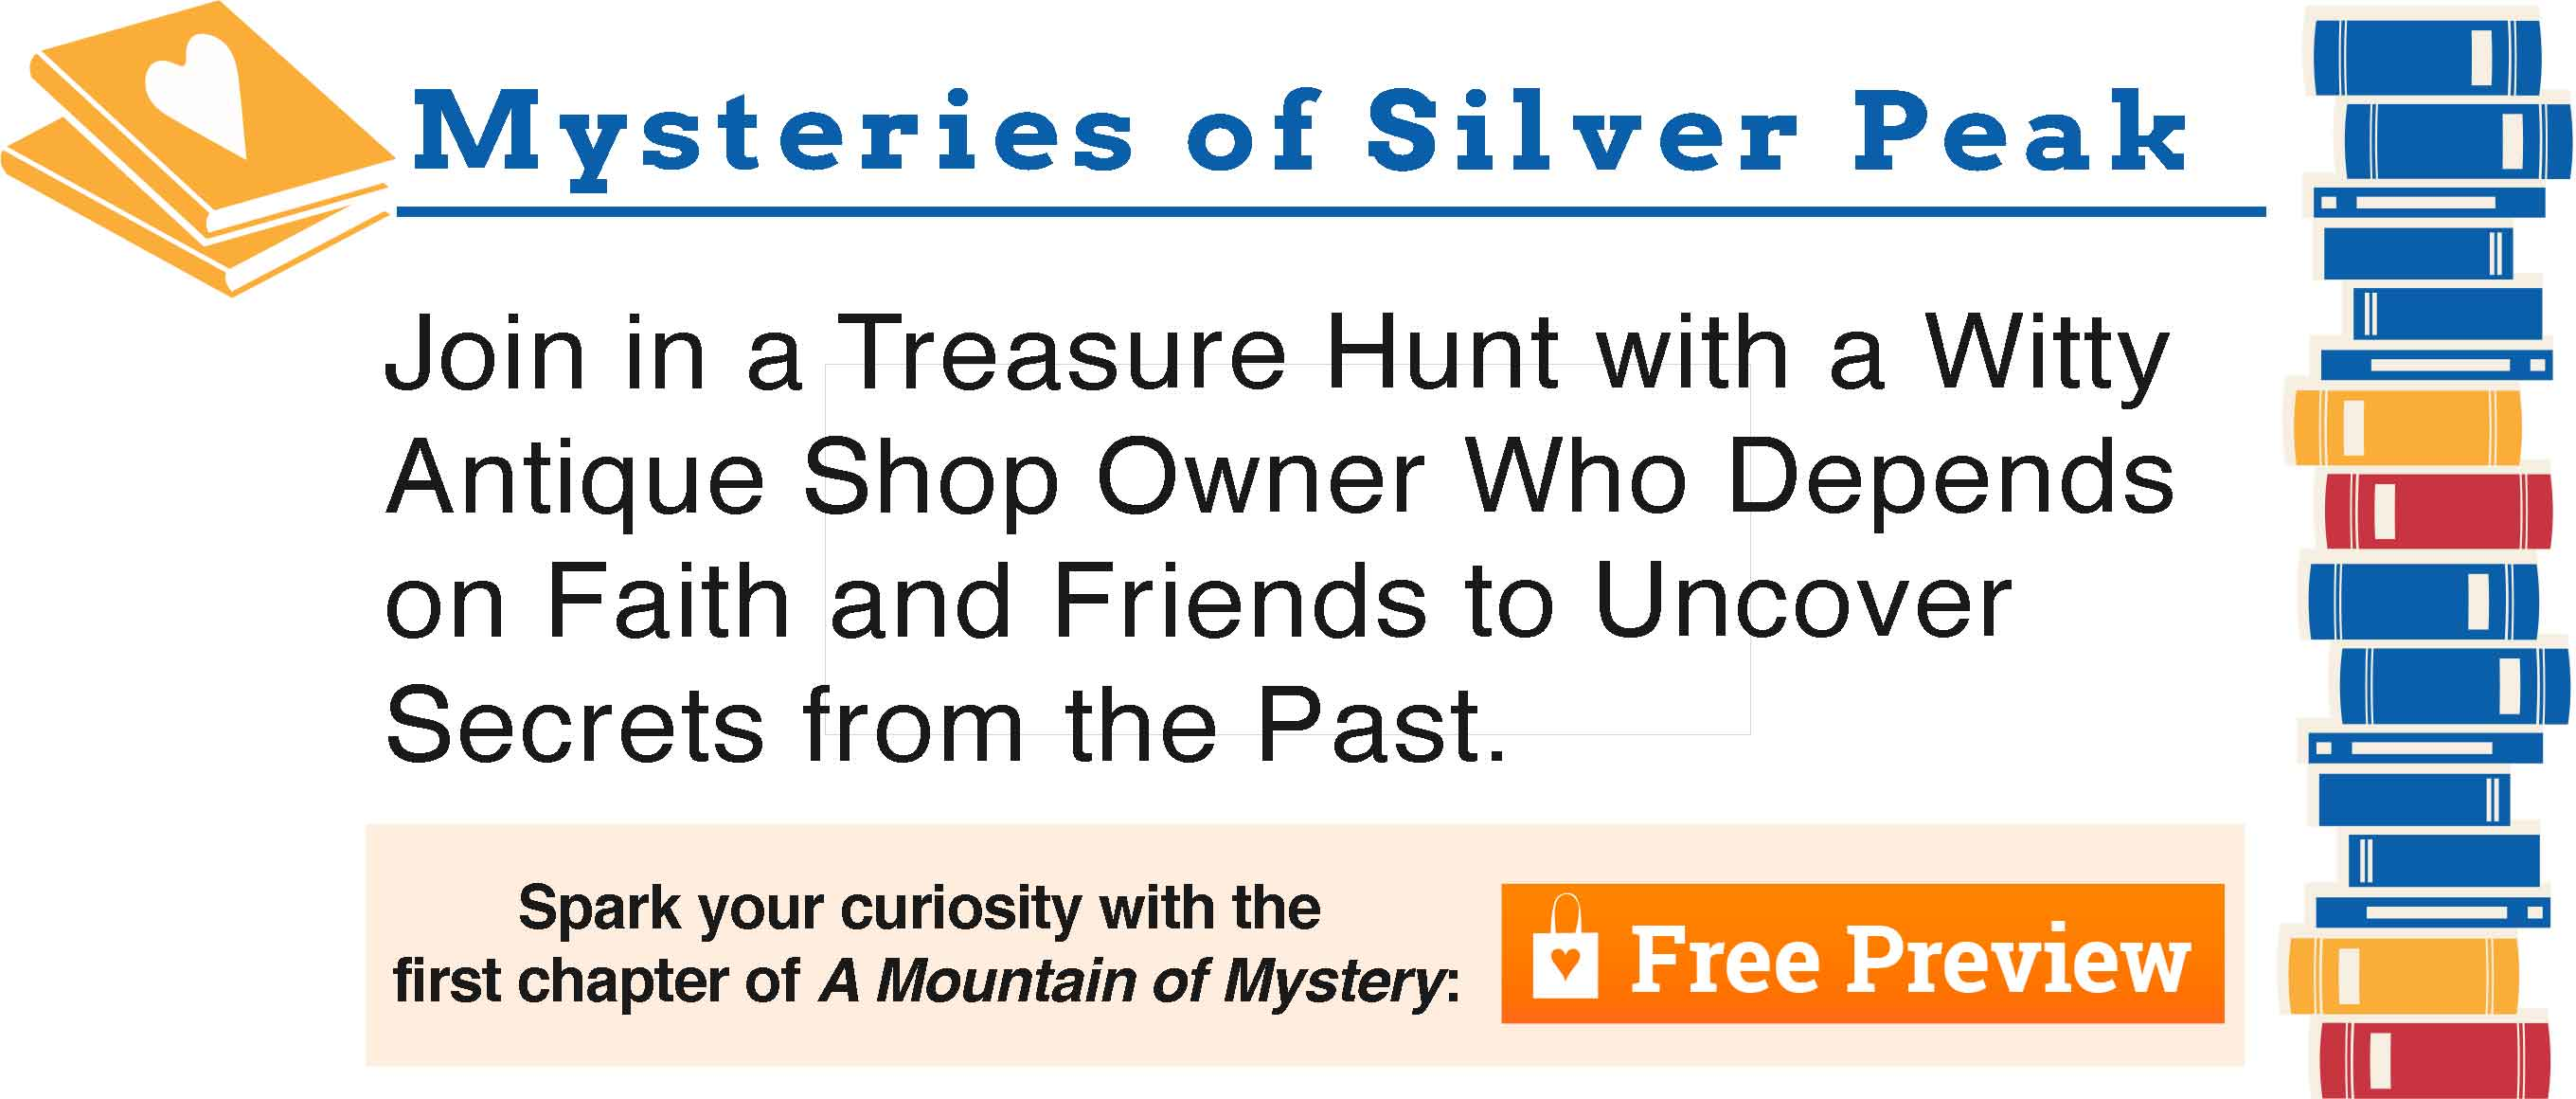 Mysteries of Silver Peak Series - Spark your curiosity with the  first chapter of A Mountain of Mystery! (click here to download a free preview.)